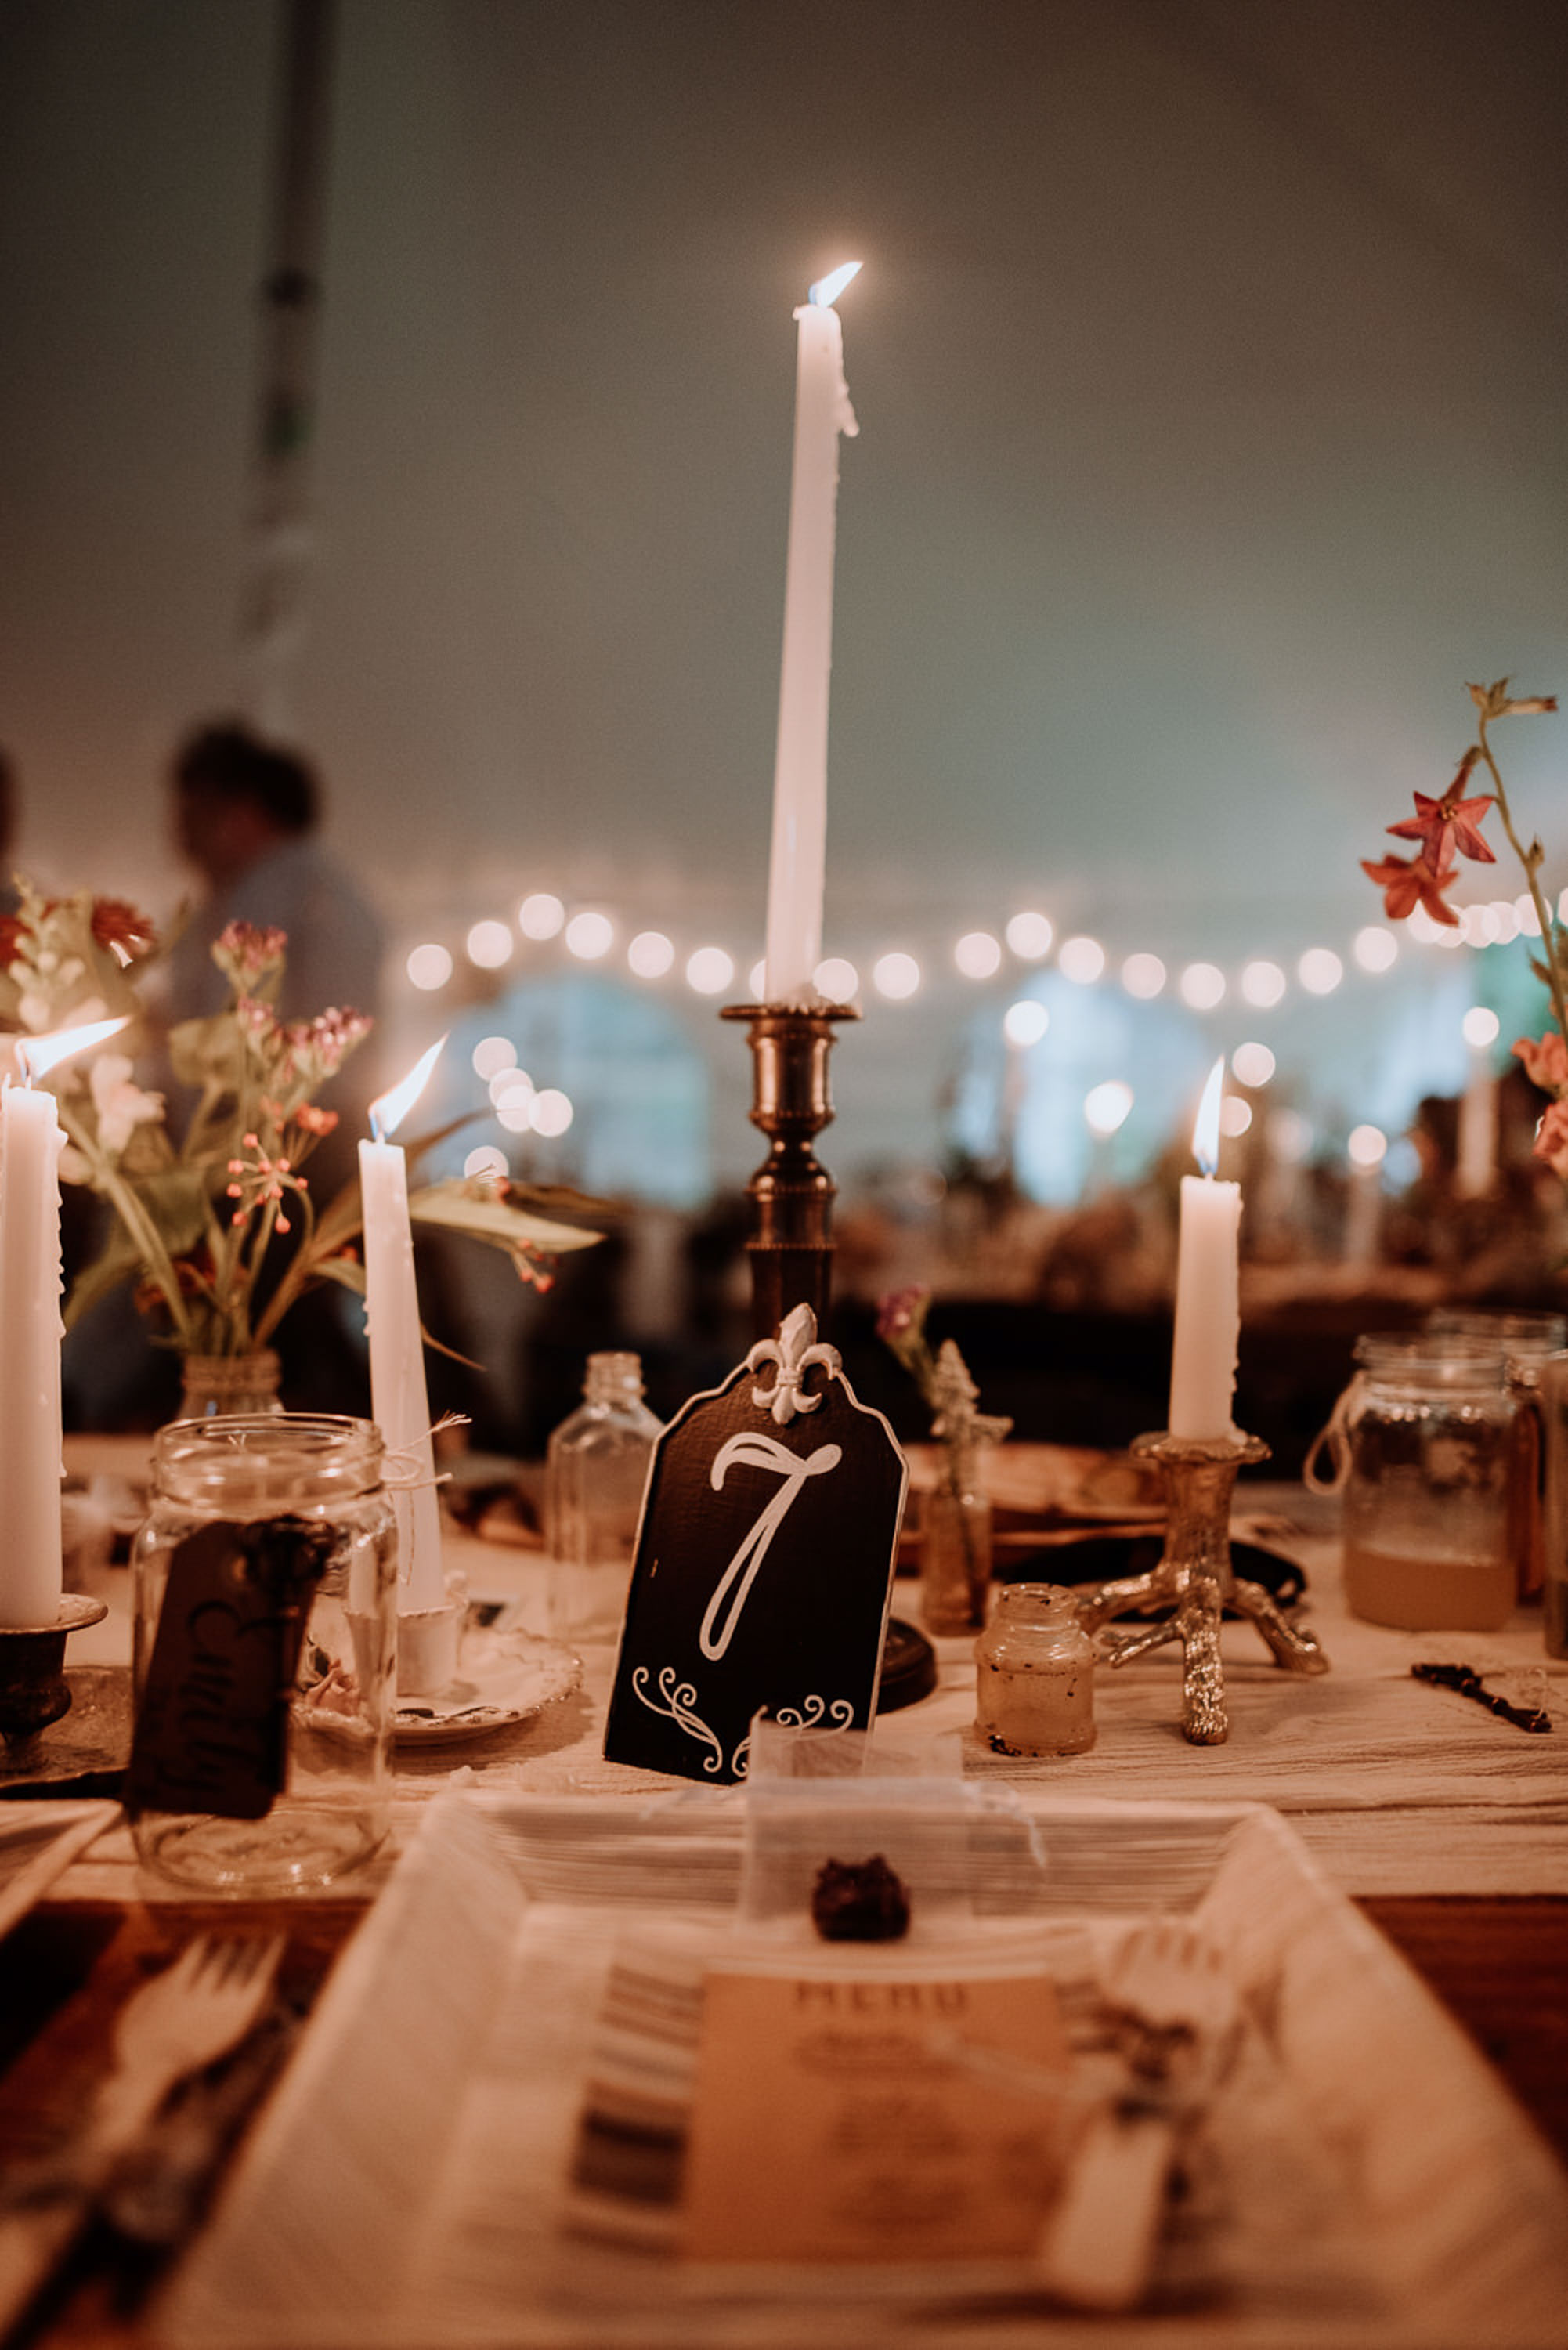 Vintage Catskills Wedding at Waterfall with unicorns and rustic